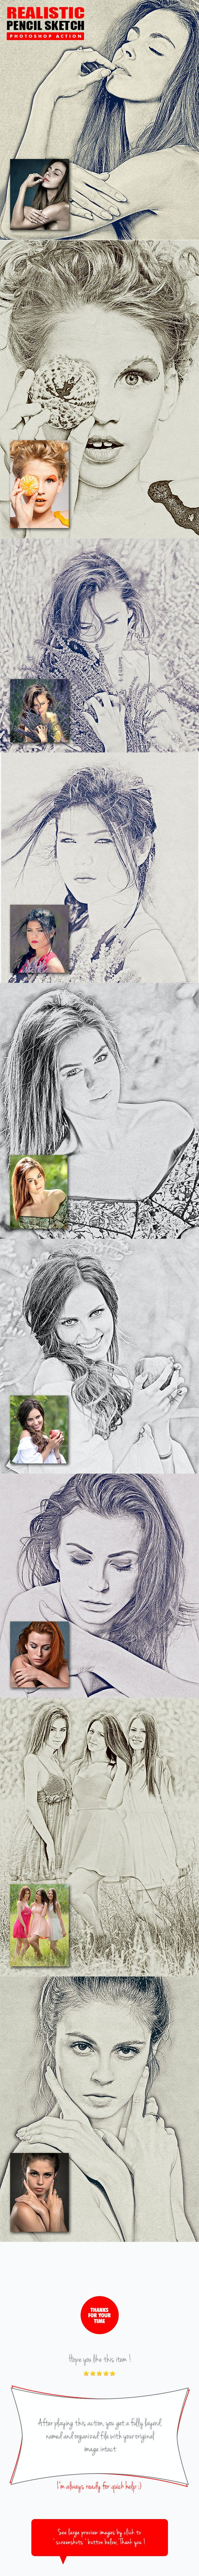 Realistic pencil sketch photoshop action photo effects actions